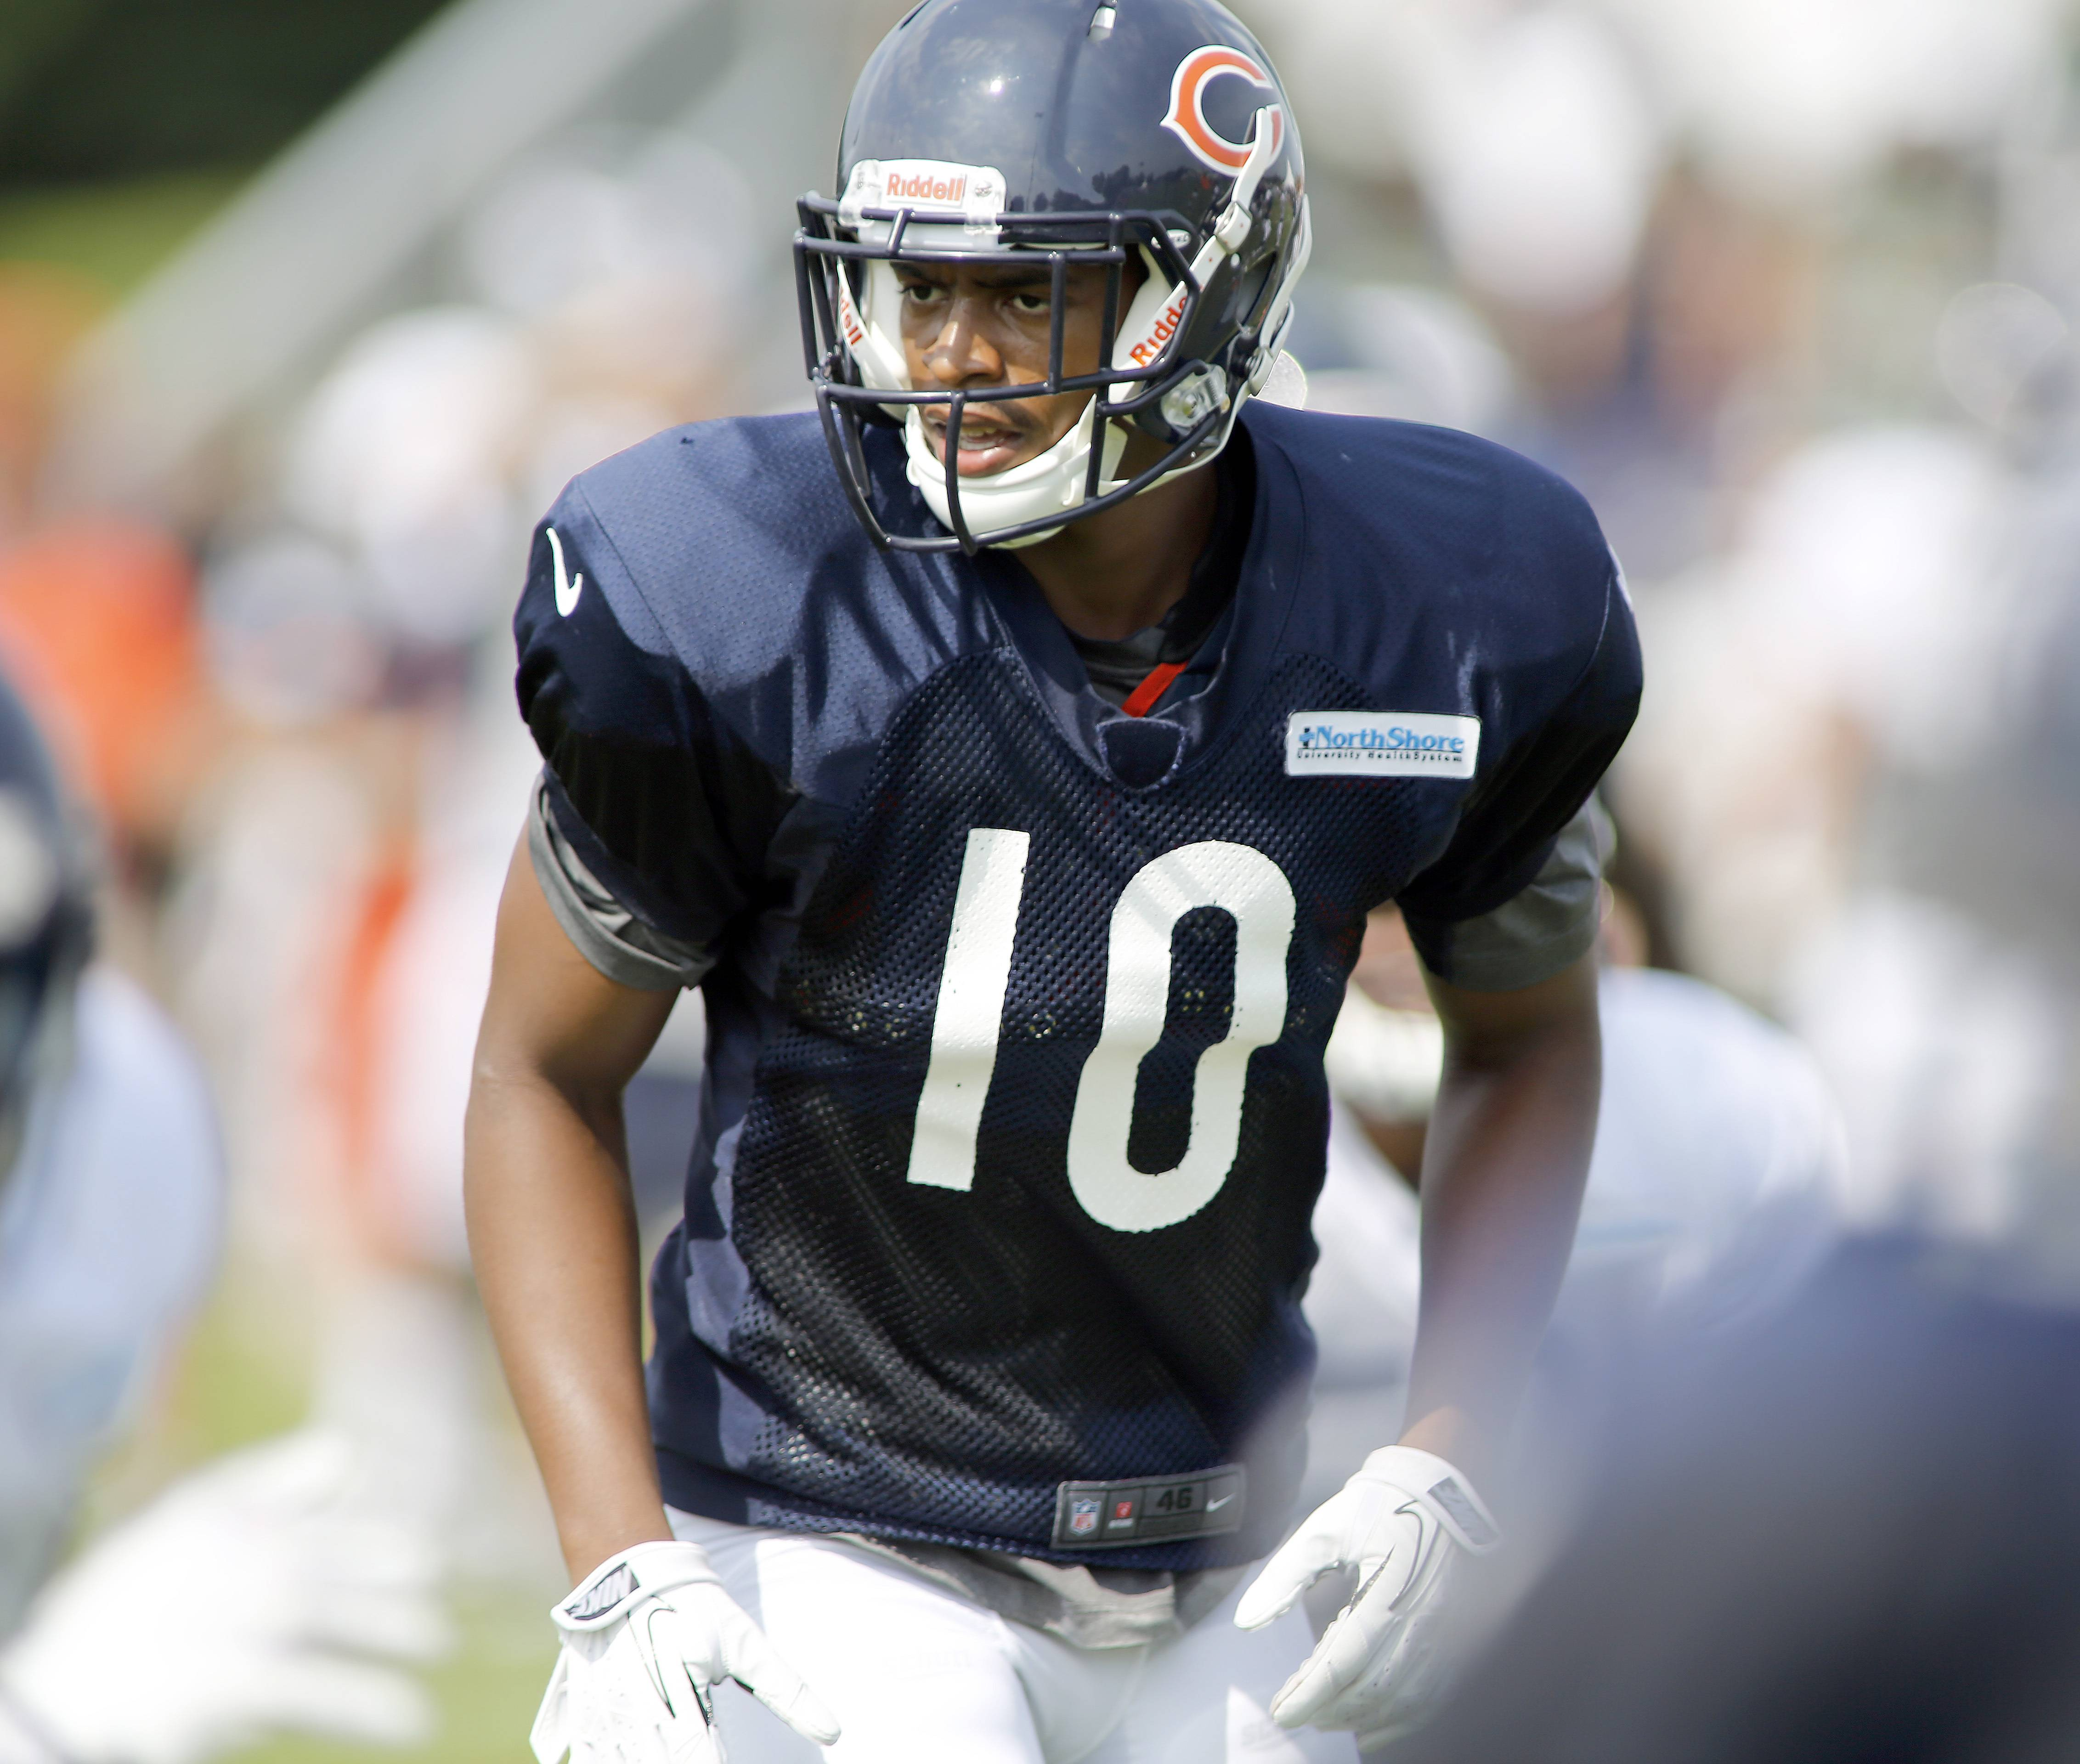 Bears lose No. 3 receiver Wilson to injury